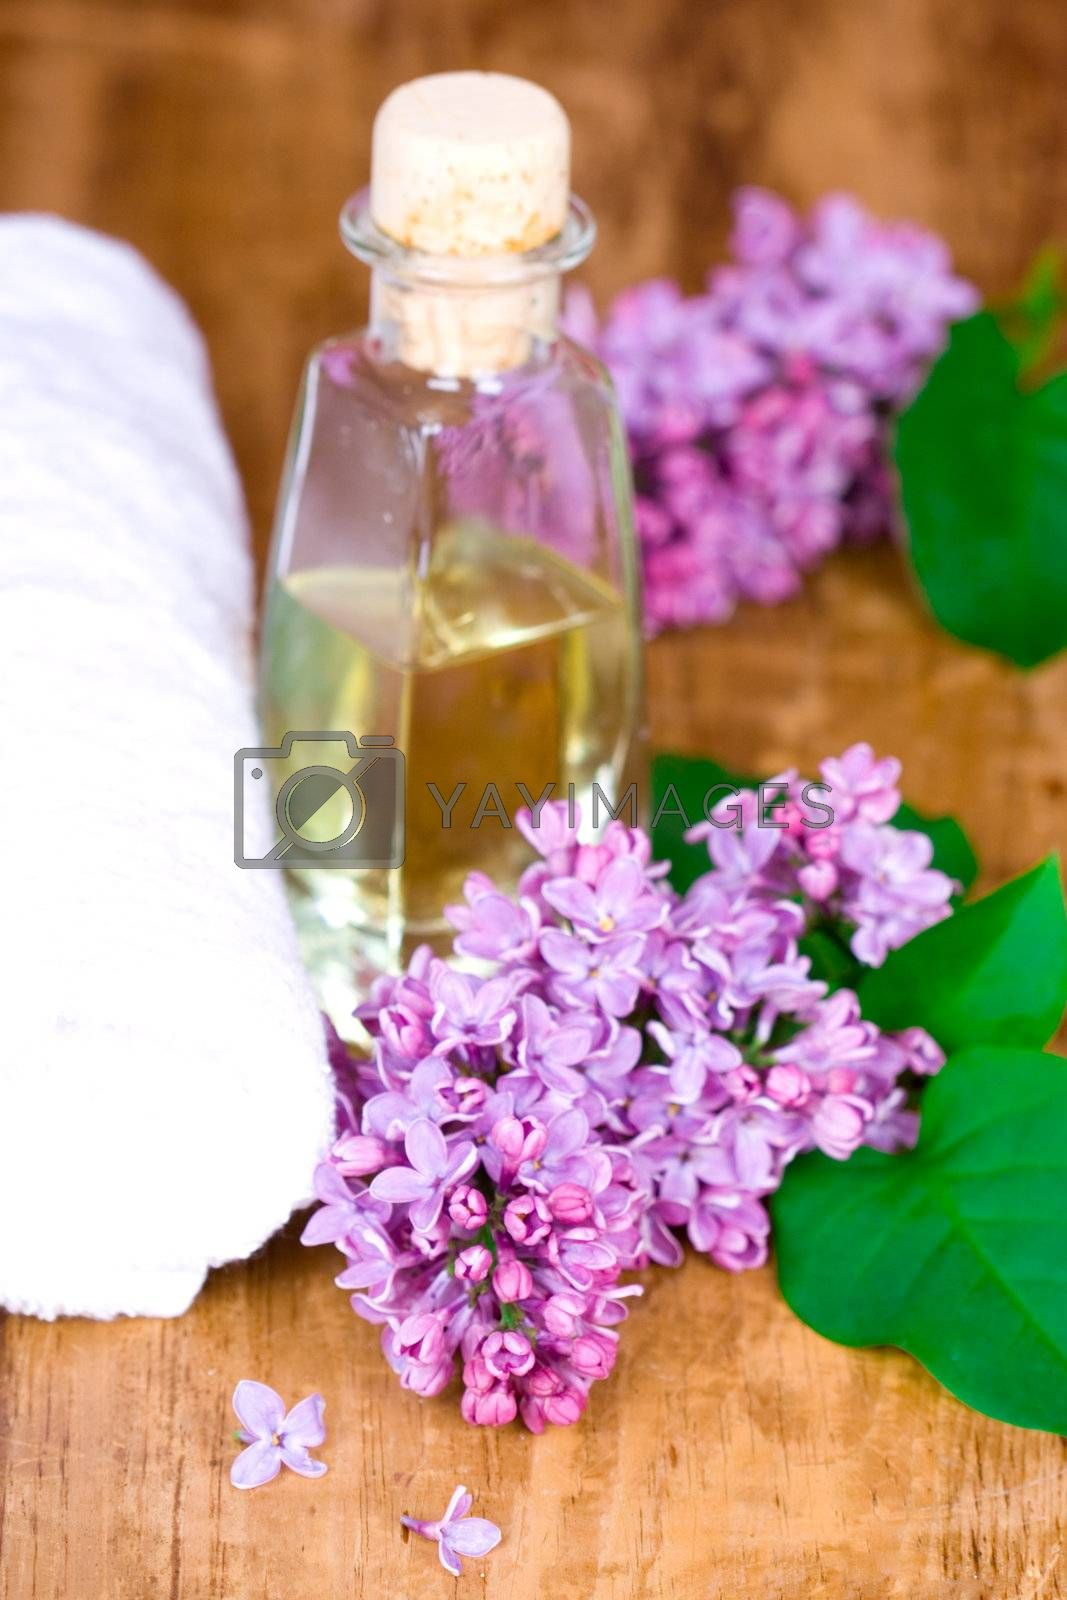 bath and spa items (towel, oil, lilac) on wooden background